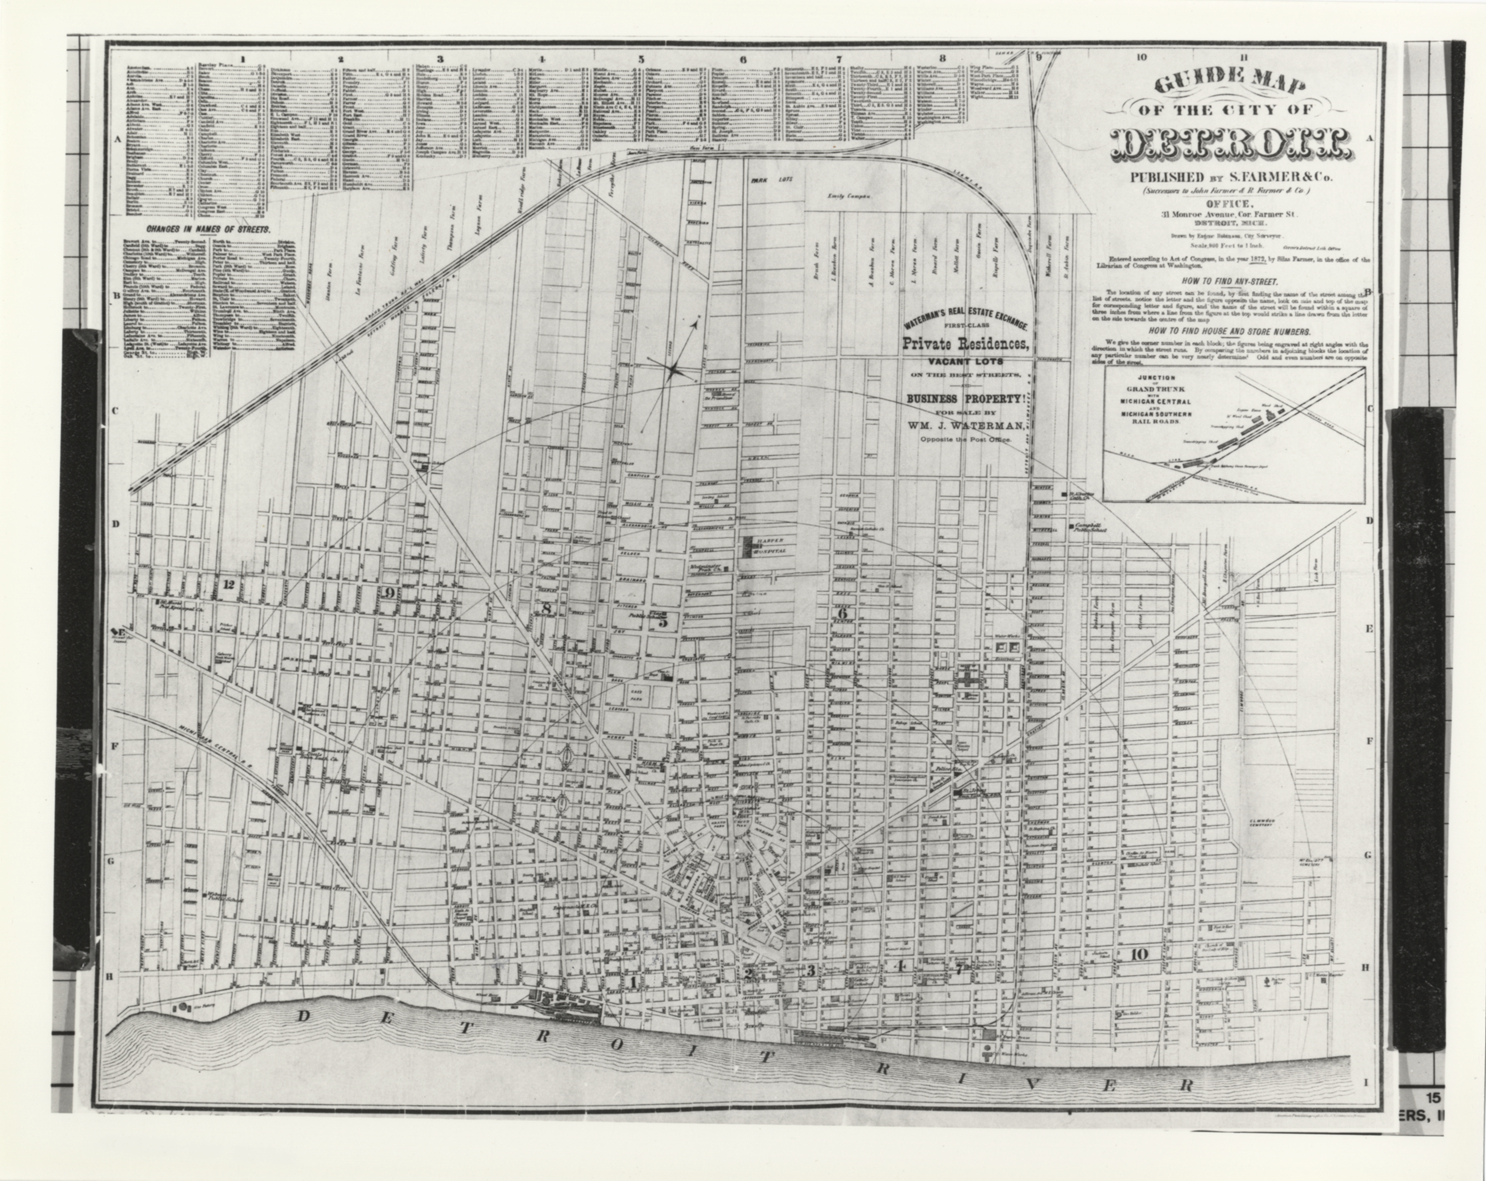 Guide map of the city of Detroit   DPL DAMS